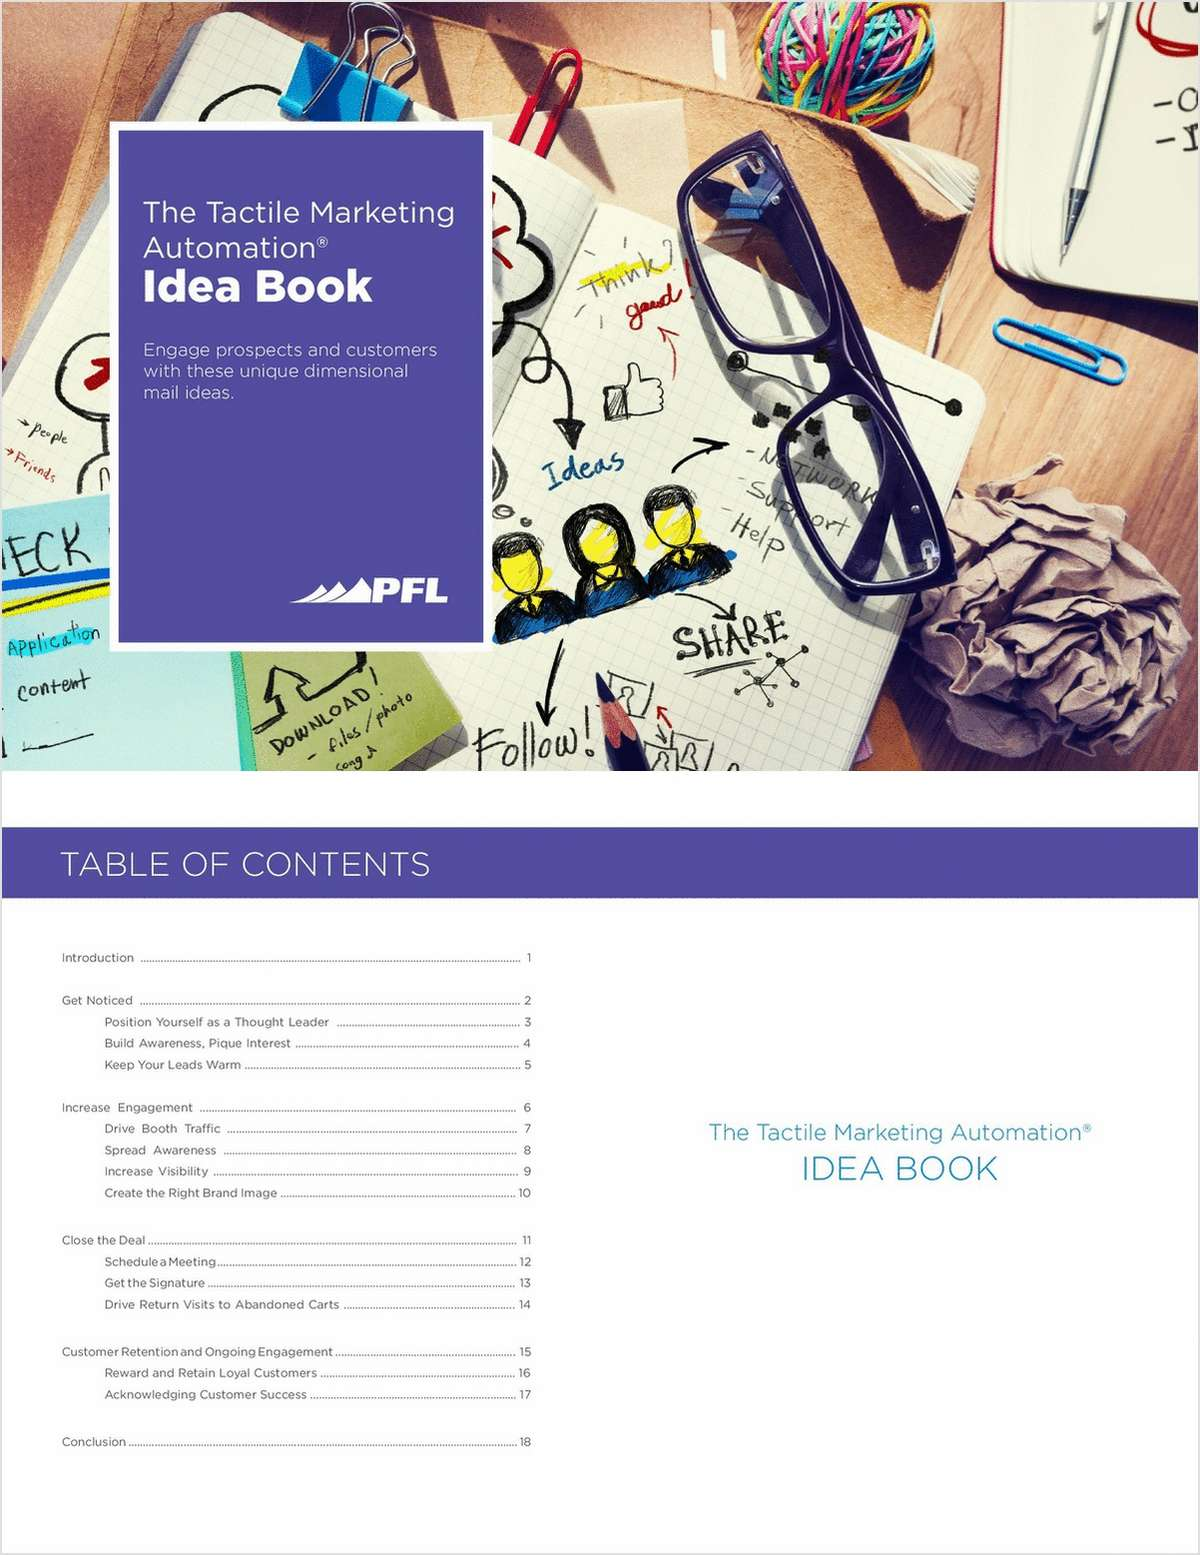 The Tactile Marketing Automation Idea Book